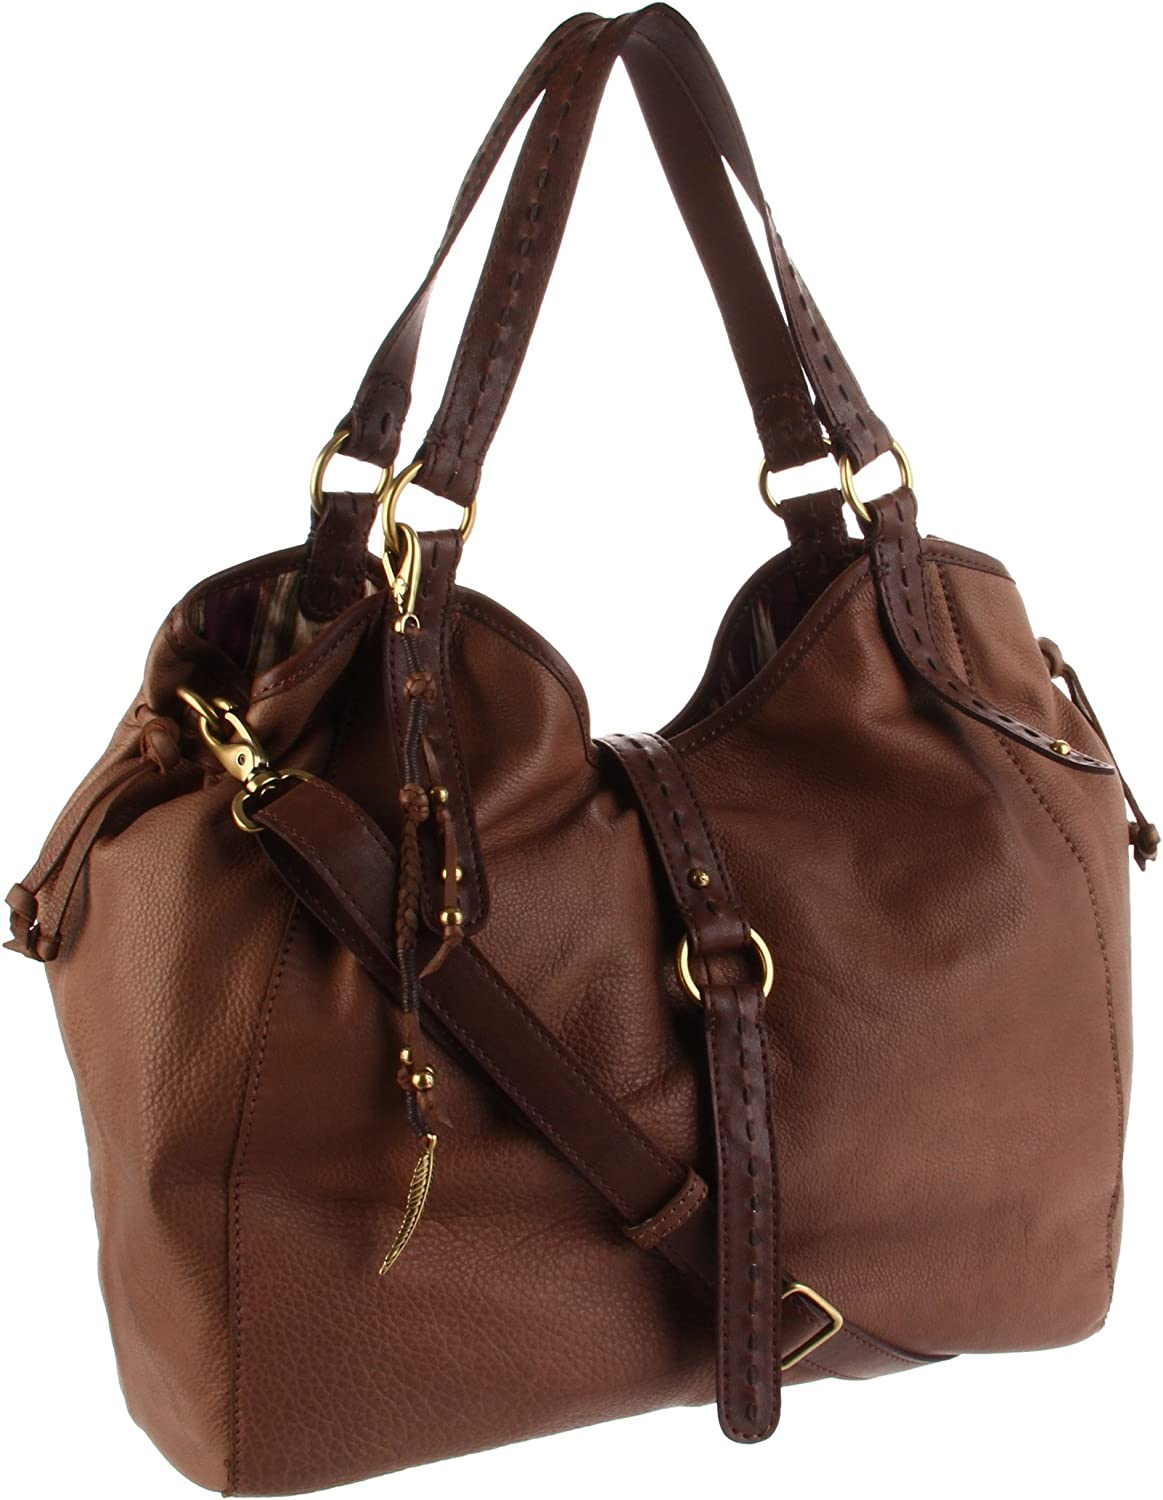 Sales of SALE items 5 ☆ popular from new works Lucky Brand Hobo HKRU1271